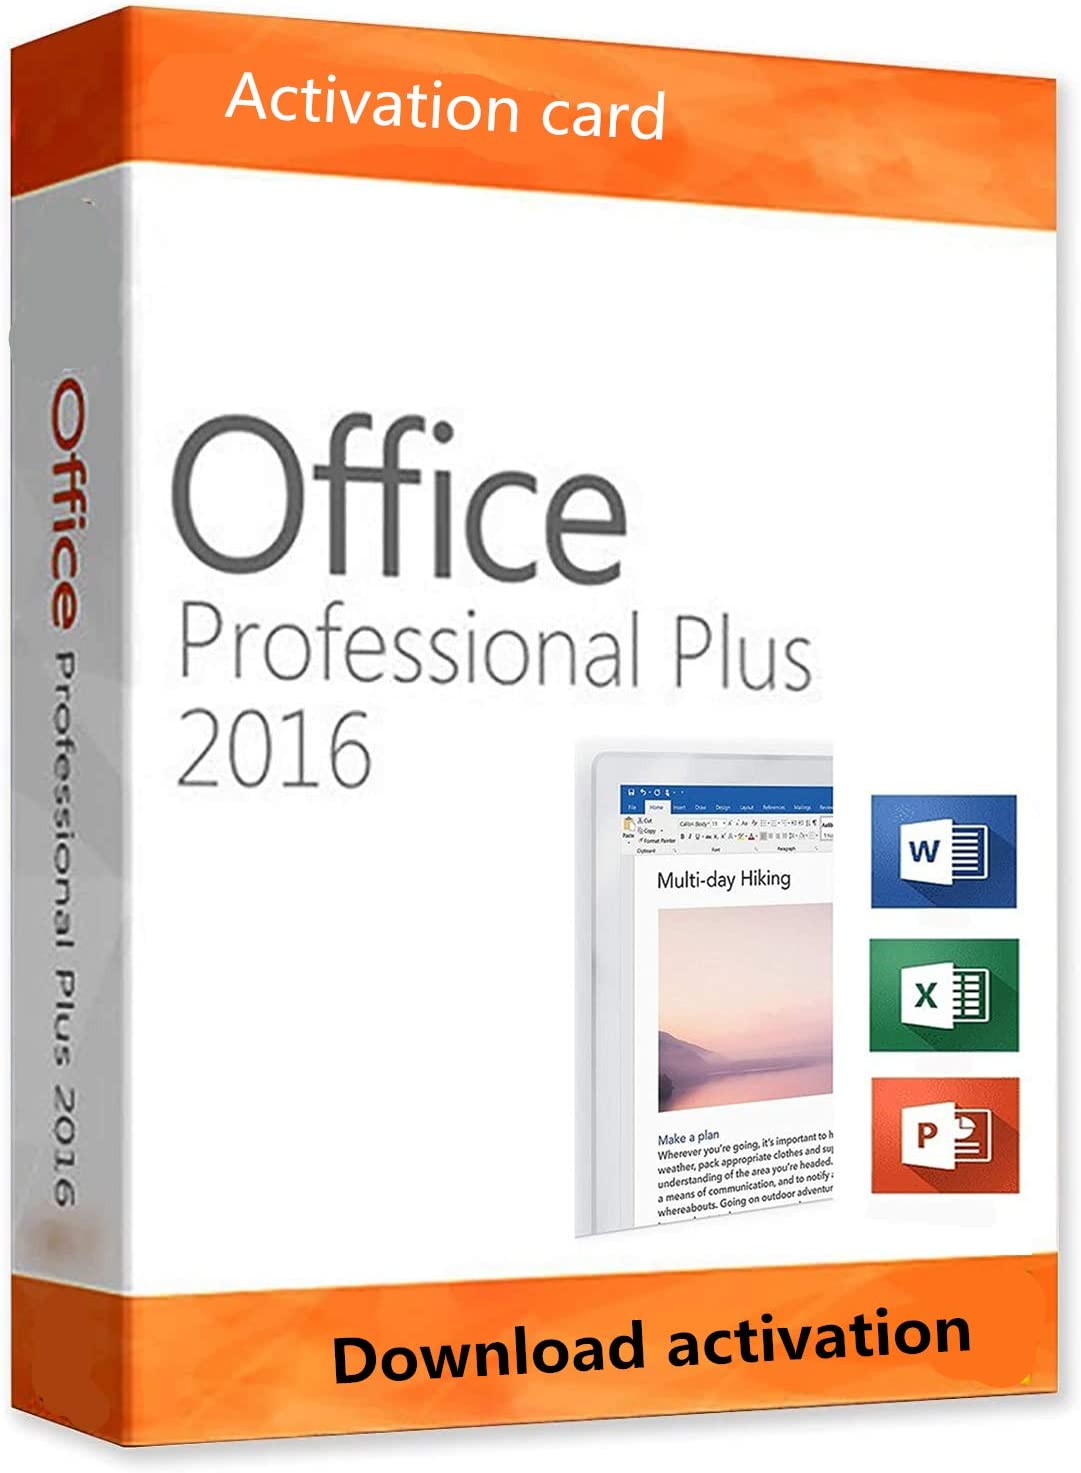 Office 2016 Professional Plus For Windows 10 32/64-Bit Activation Card